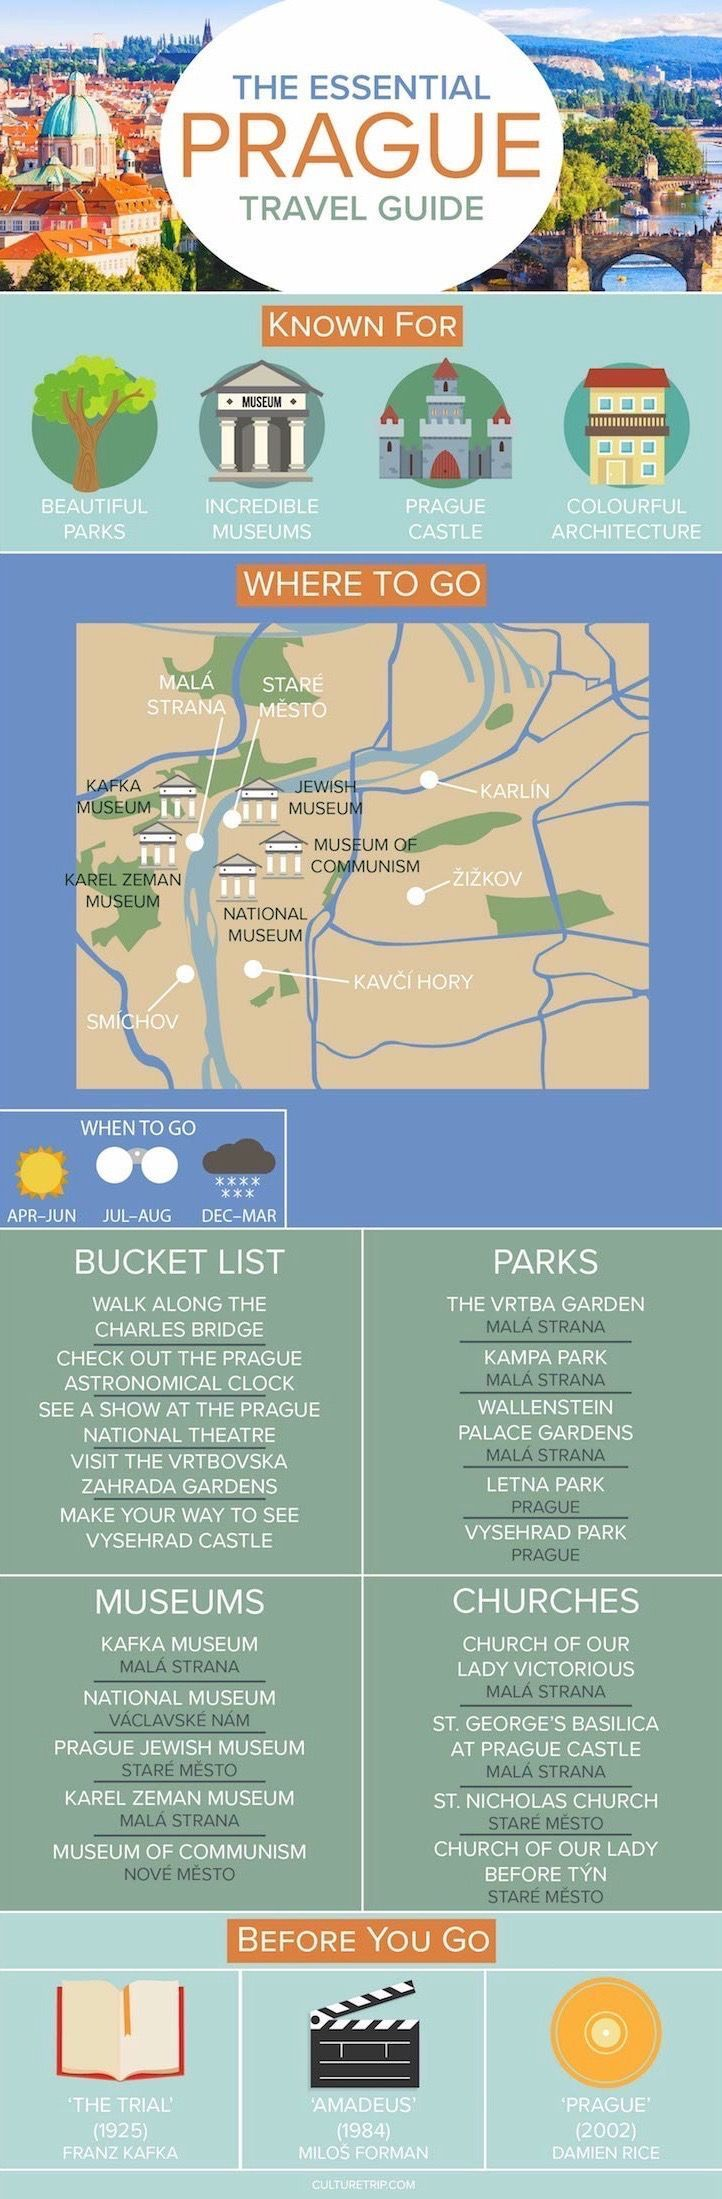 The Essential Travel Guide to Prague (Infographic)|Pinterest:/theculturetrip/